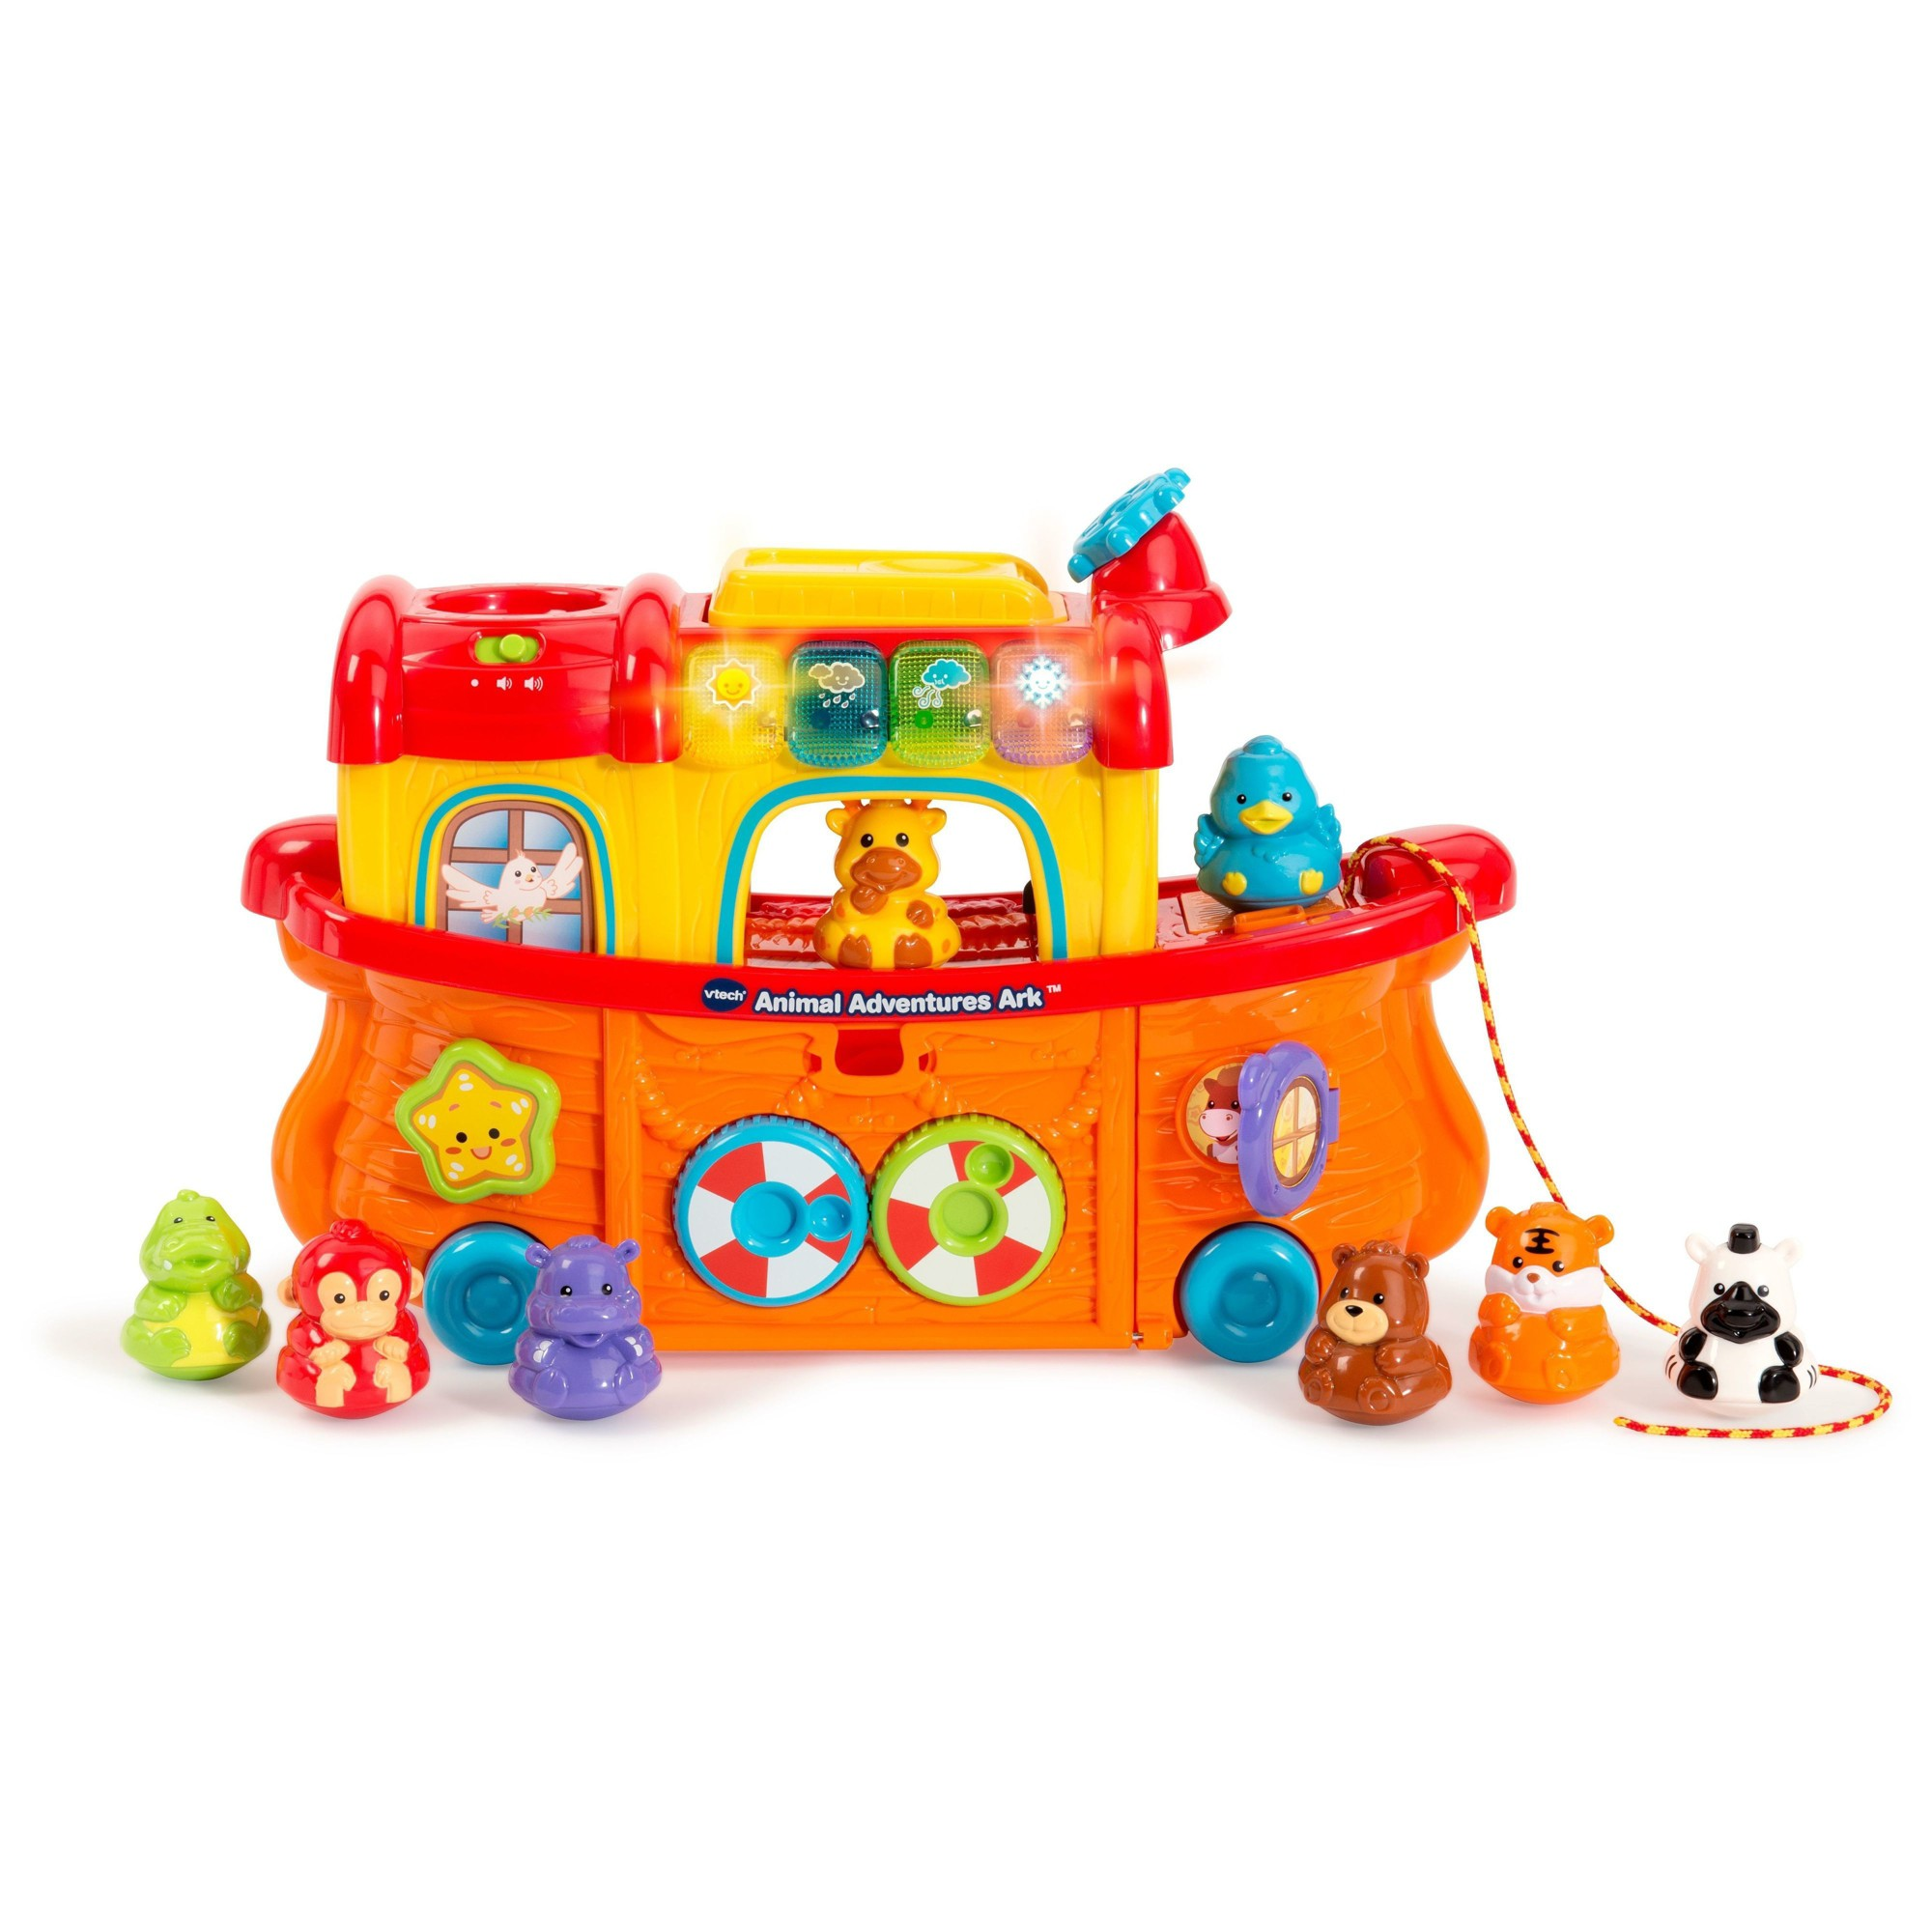 Vtech Animal Adventures Ark Toys Pinterest Toys Learning